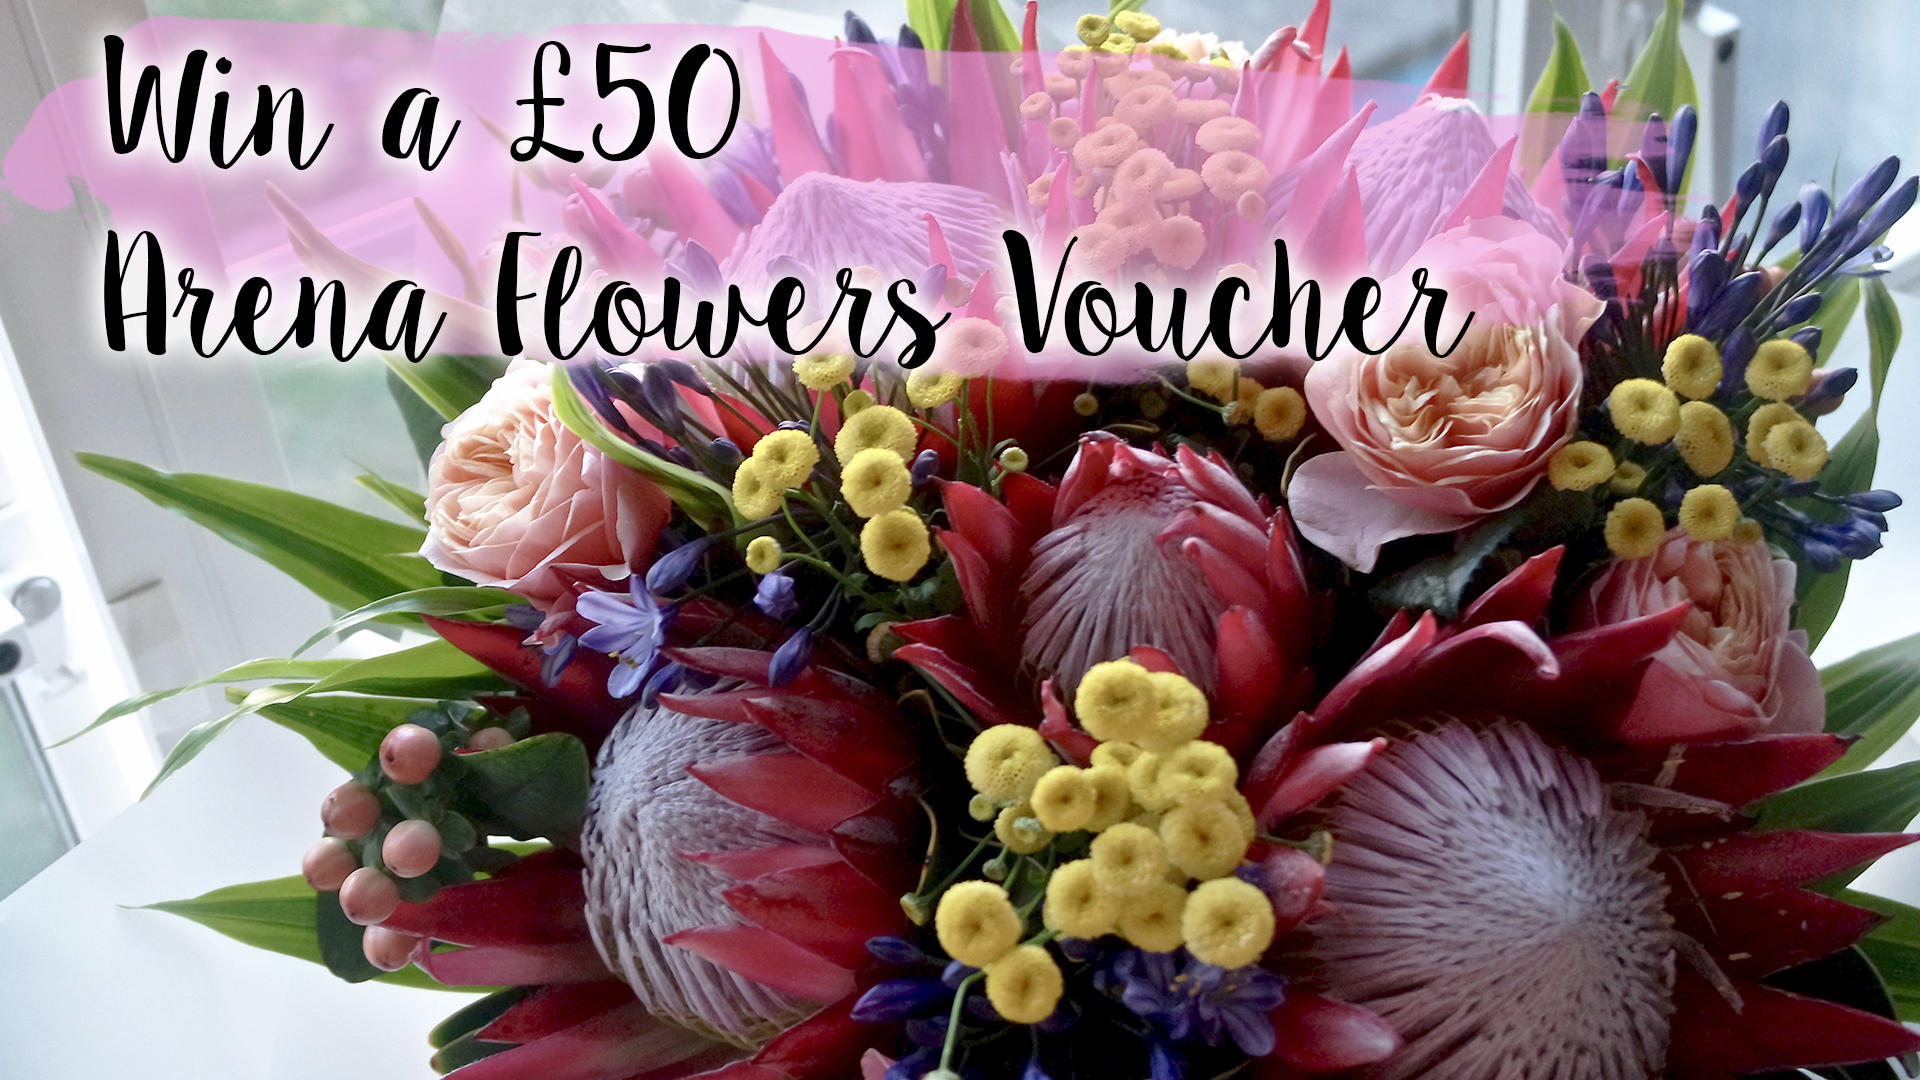 Arena Flowers - Luxury Flowers and Bouquets || £50 Voucher Giveaway